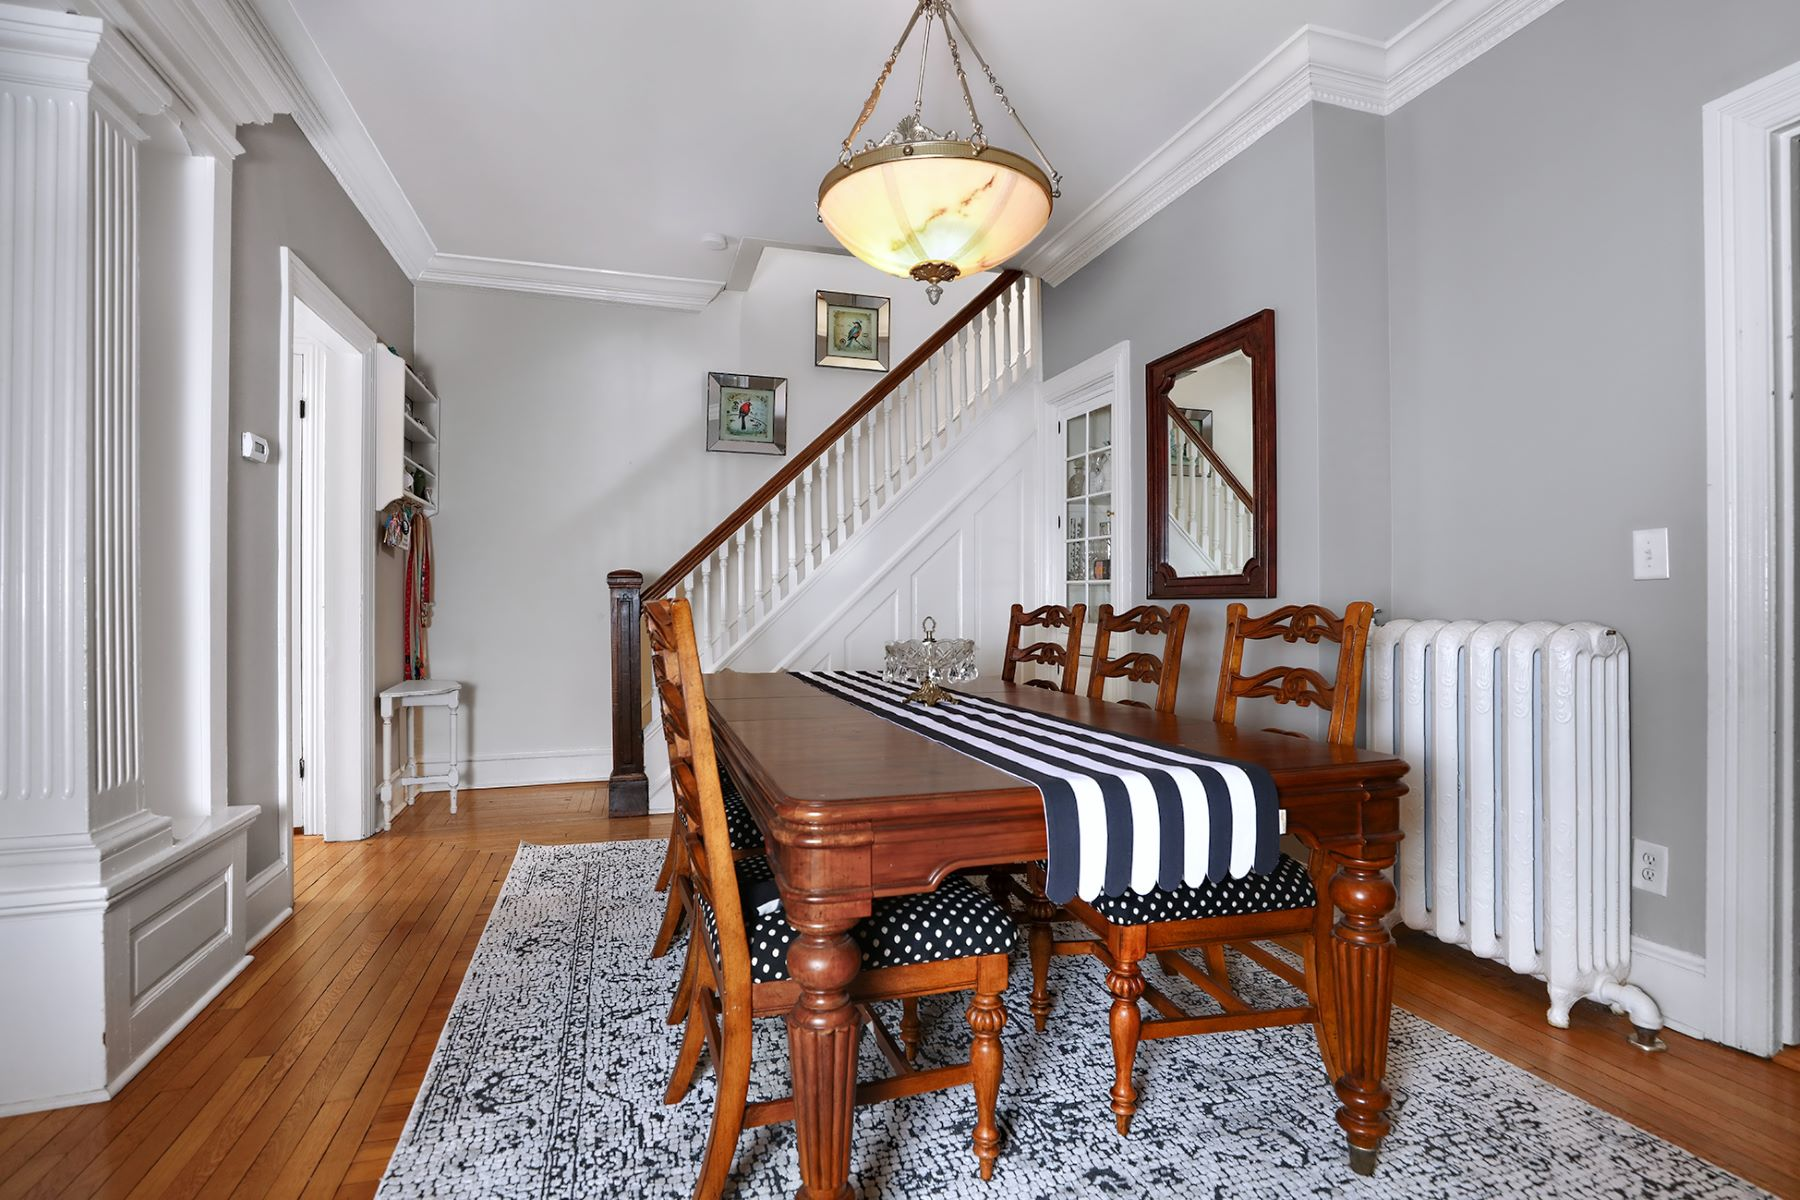 Additional photo for property listing at A Beauty In Distinguished Mansion Neighborhood 135 North Union Street, Lambertville, New Jersey 08530 United States